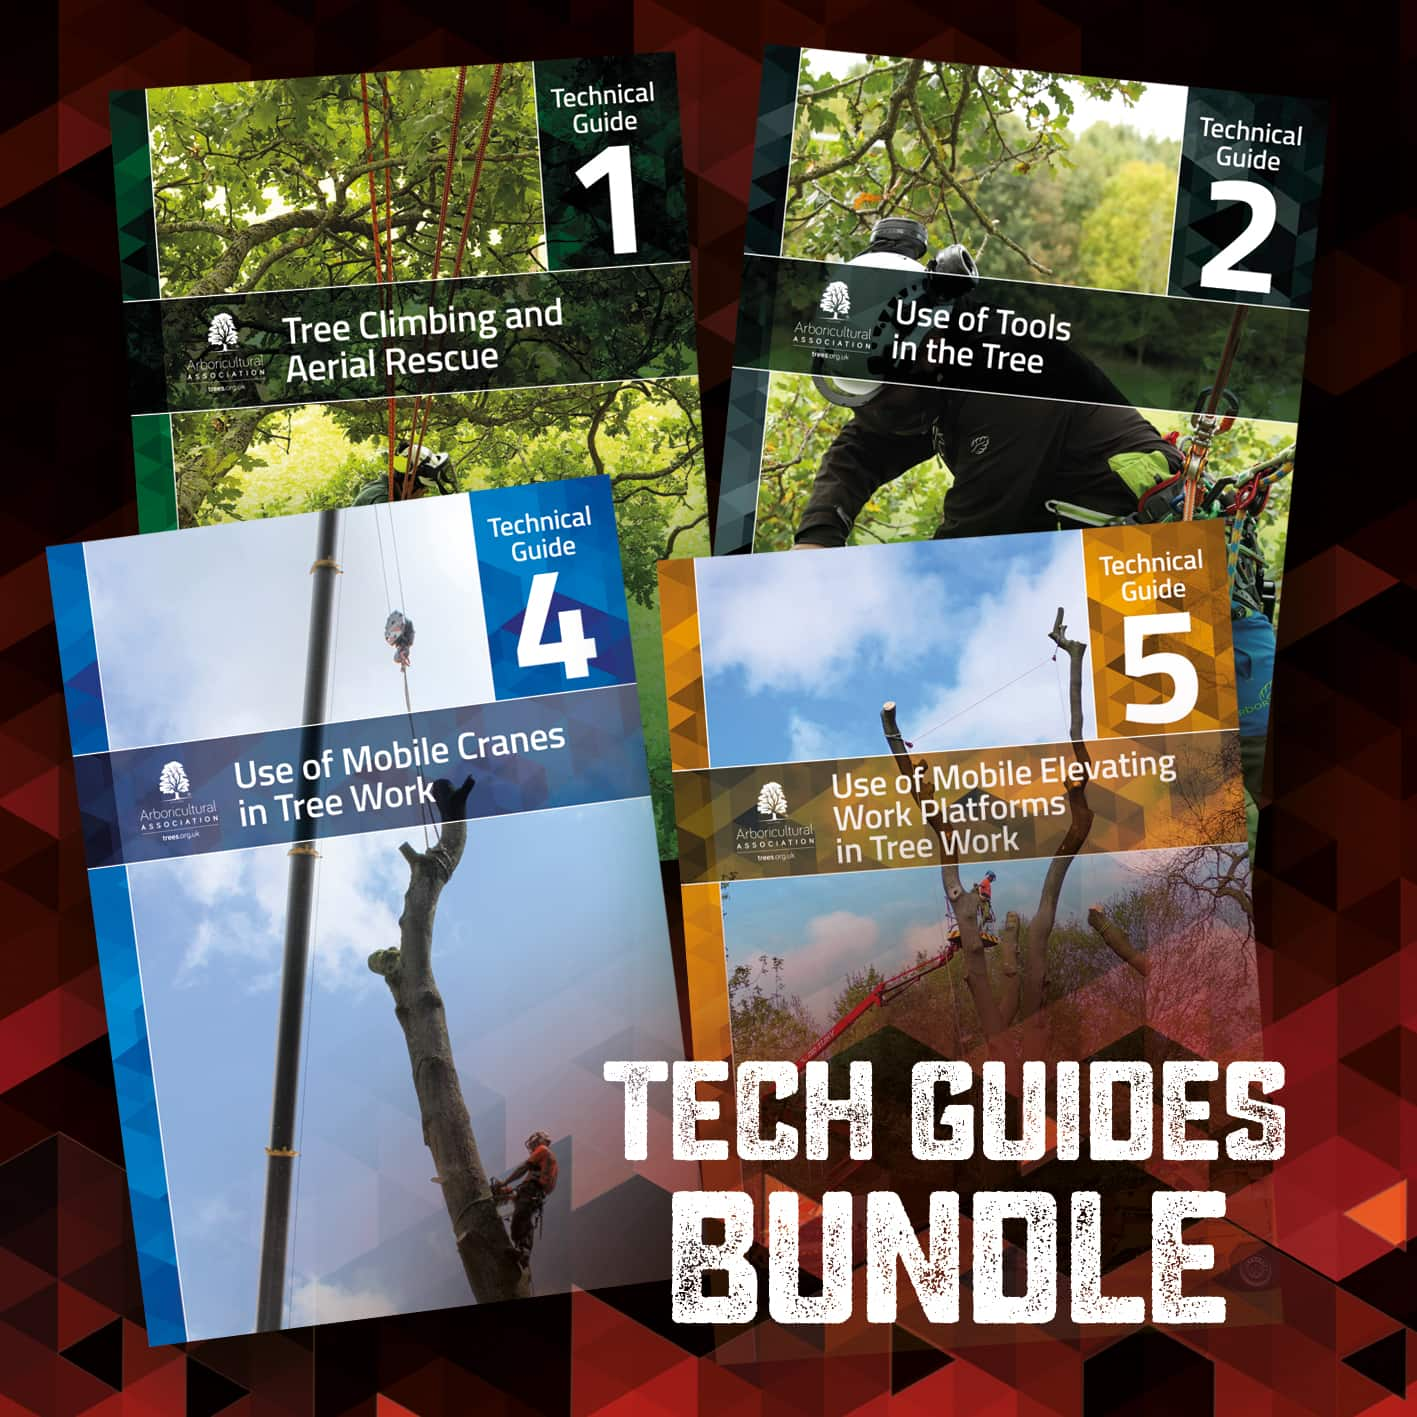 Technical Guide Pre-order Bundle Offer